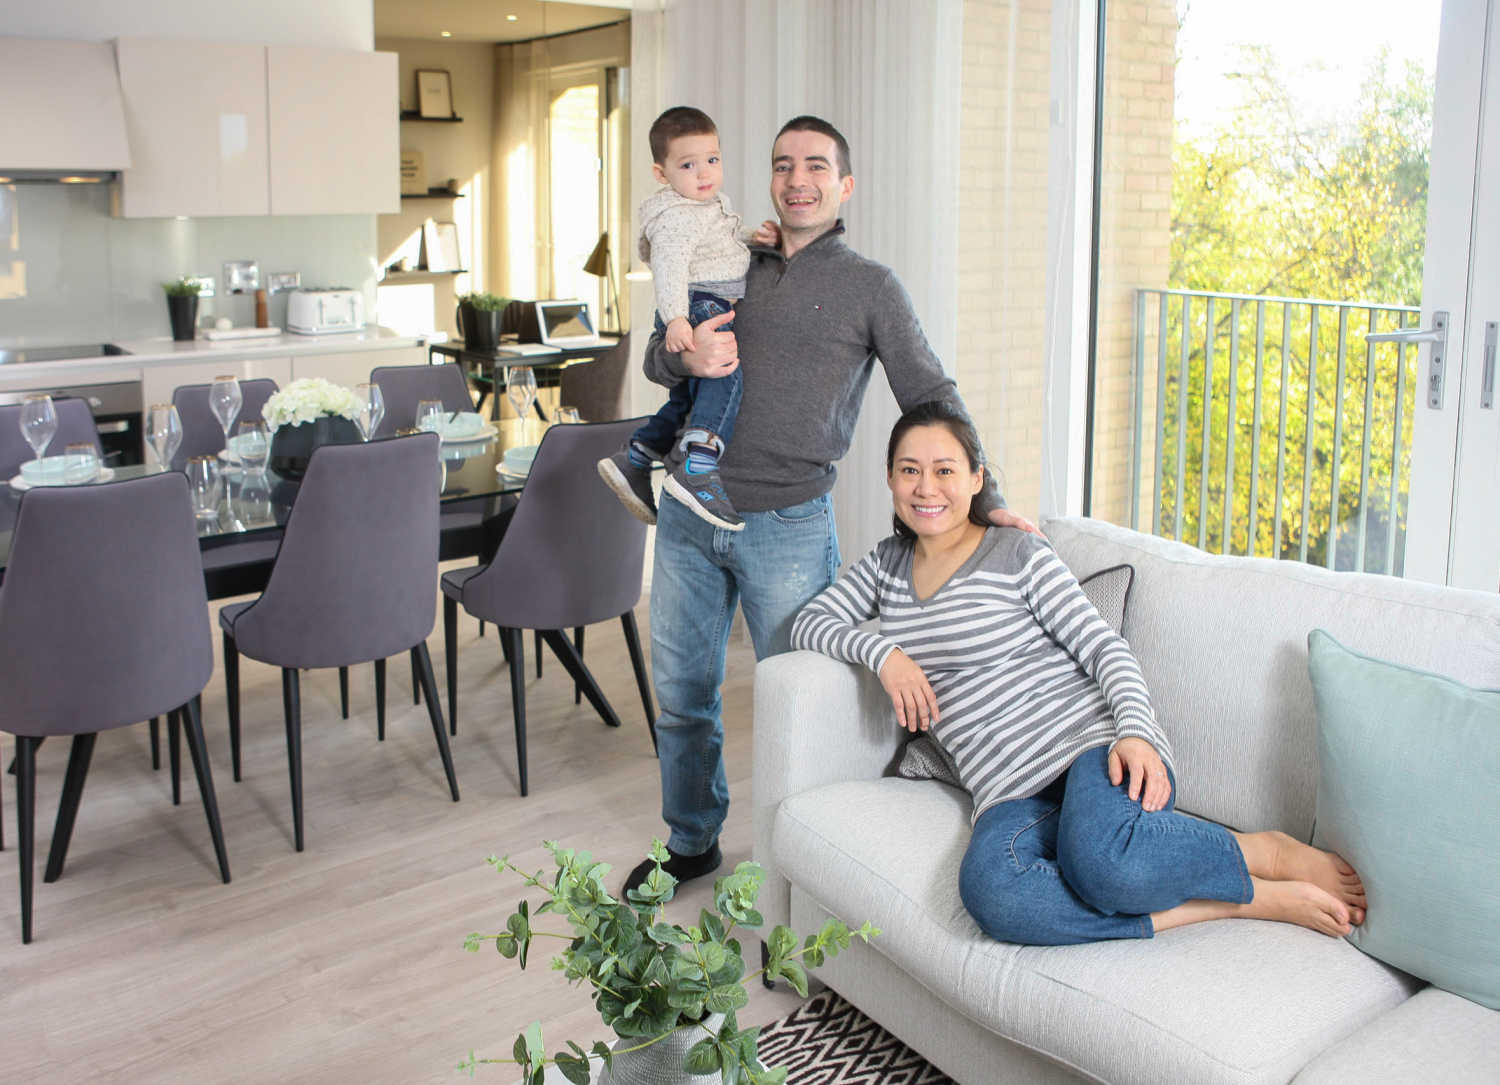 Image shows a young family at Barratt London's Hendon Waterside development